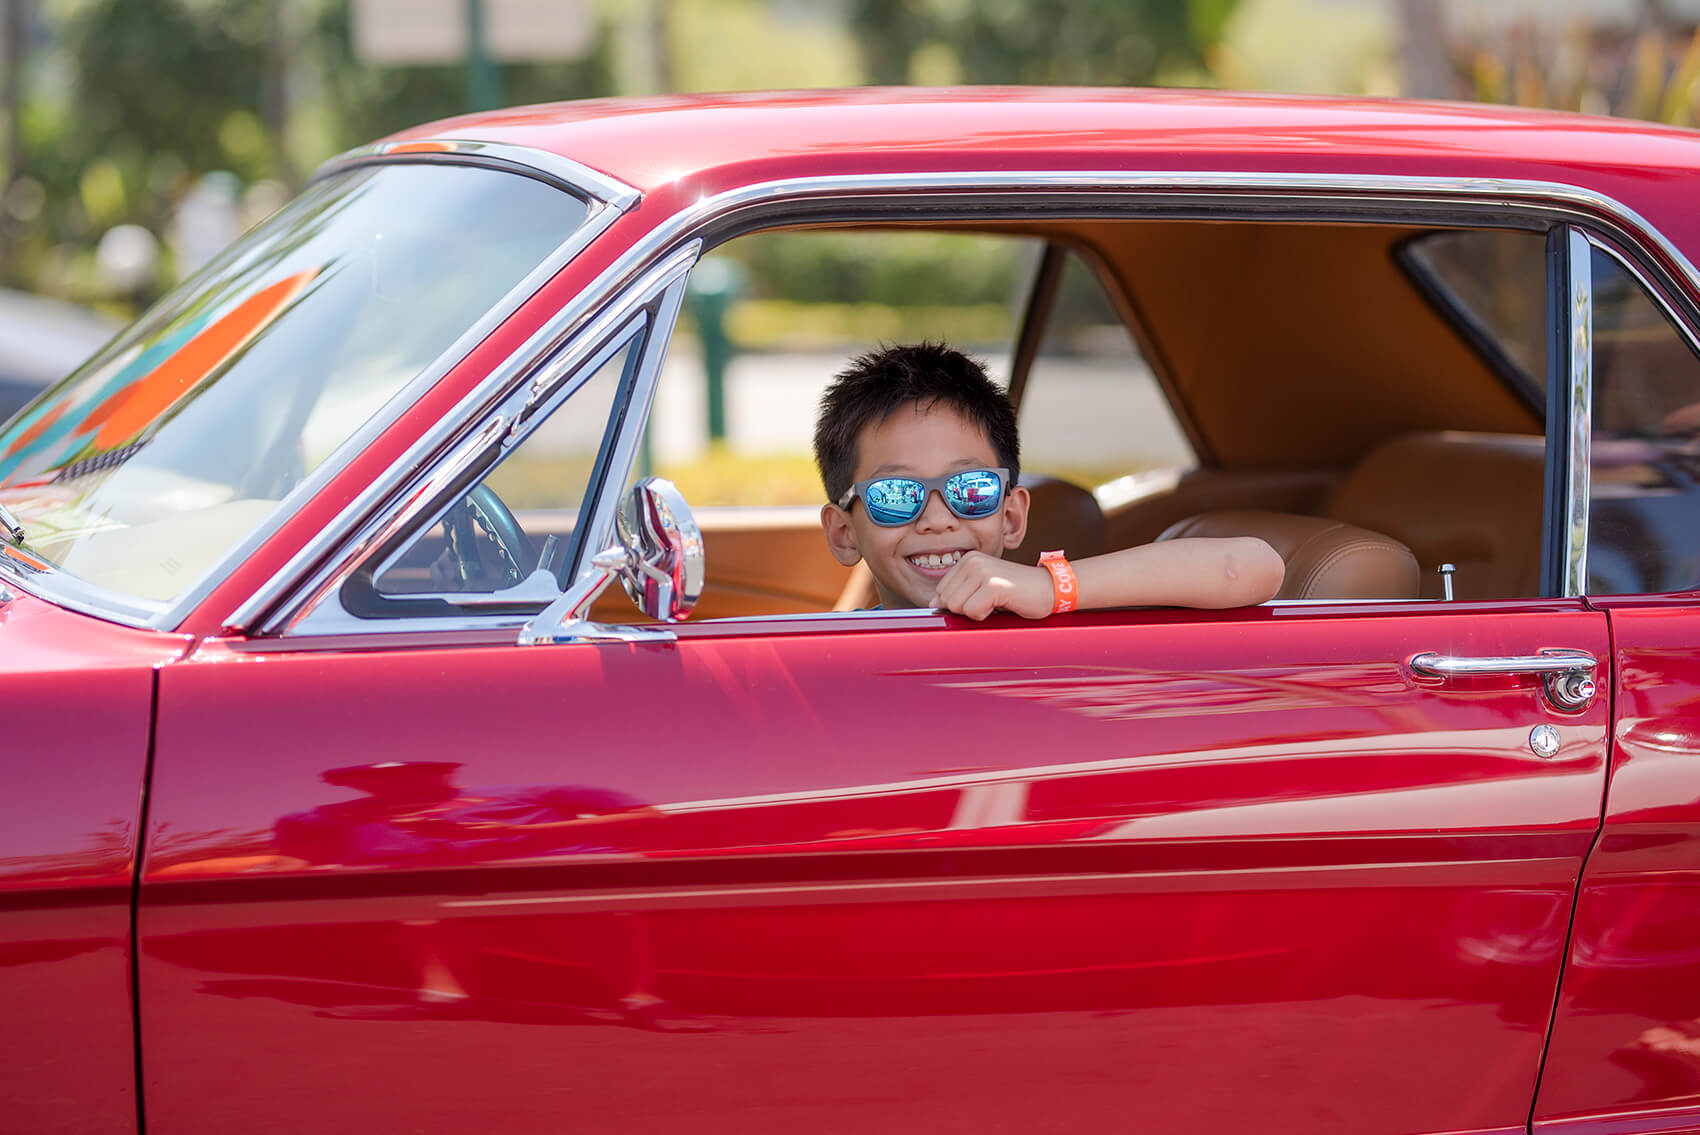 a child sits in the front seat of a retro red car and smiles